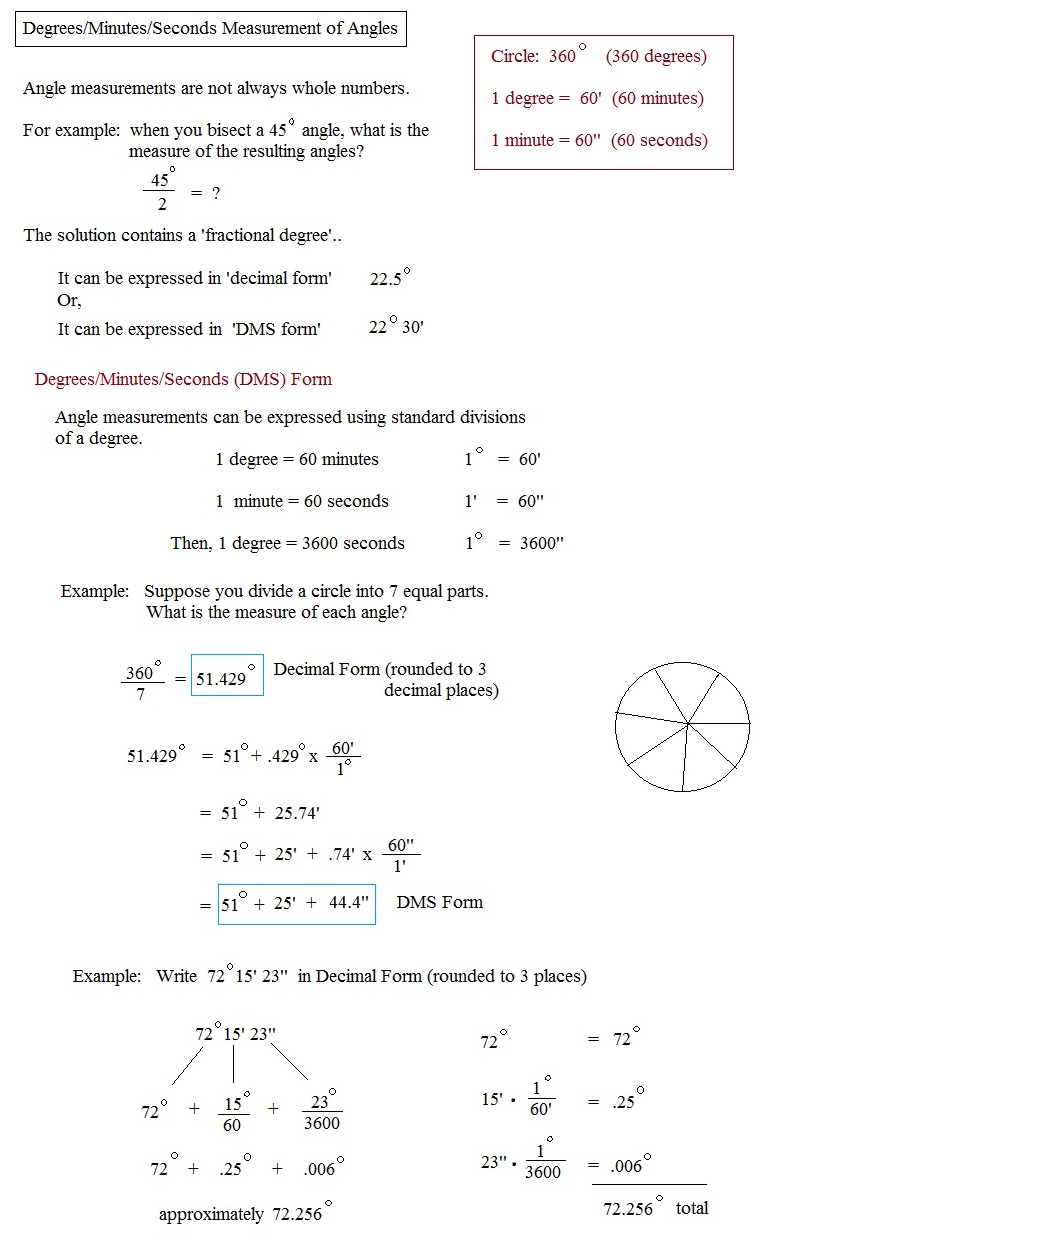 angle and measurement i convert Learn more about angle and find more angle measurement conversion calculators a grad is an angle measurement and can be abbreviated as ^g , for example 1^g a degree is an angle measurement and can be abbreviated as ° , for example 1.